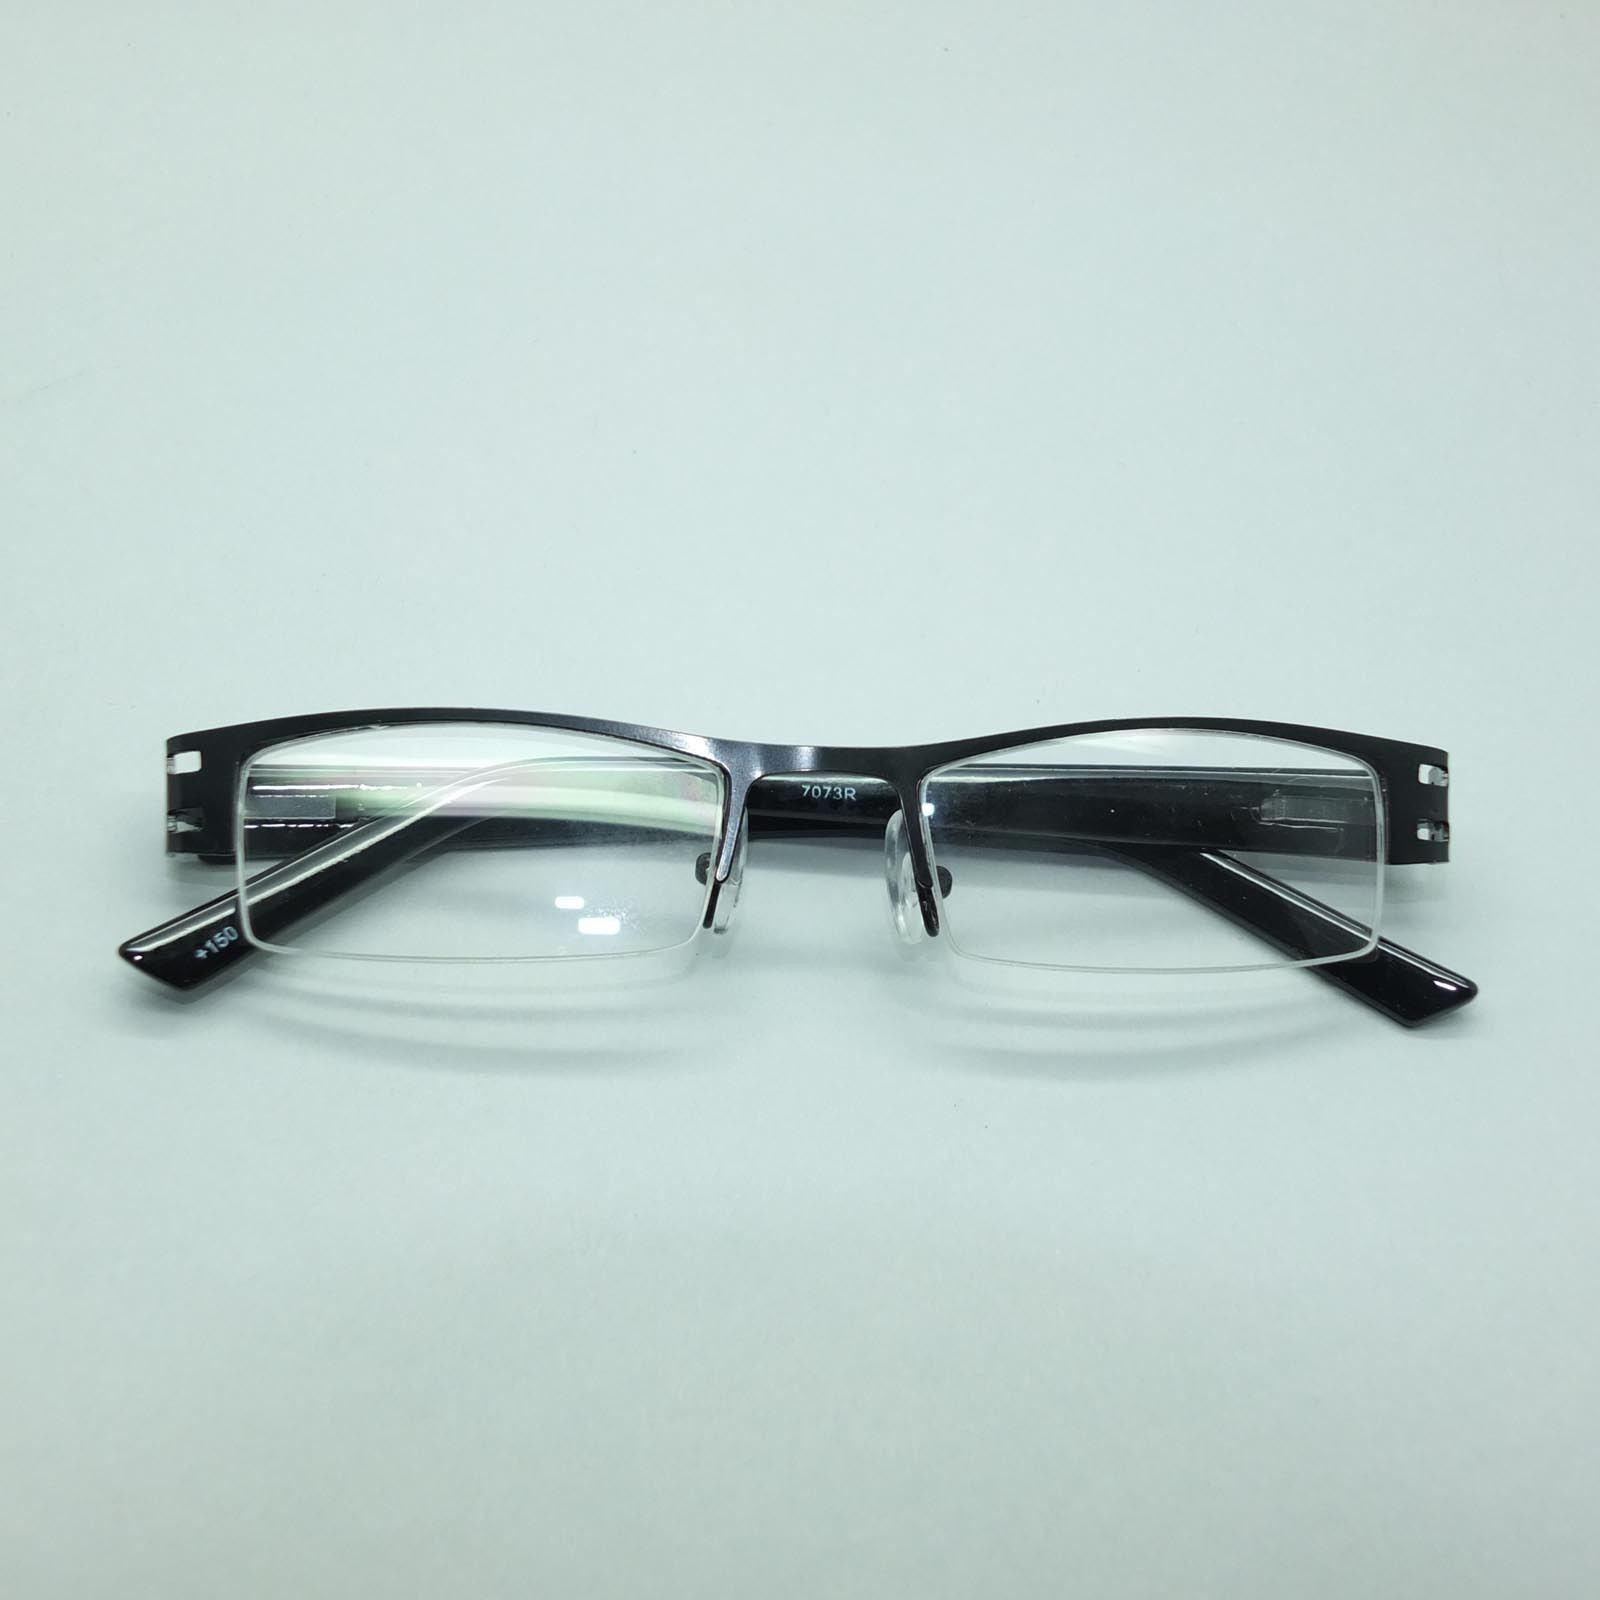 City Style Reading Glasses Black Metal Polished Straight Top Frame +1.50